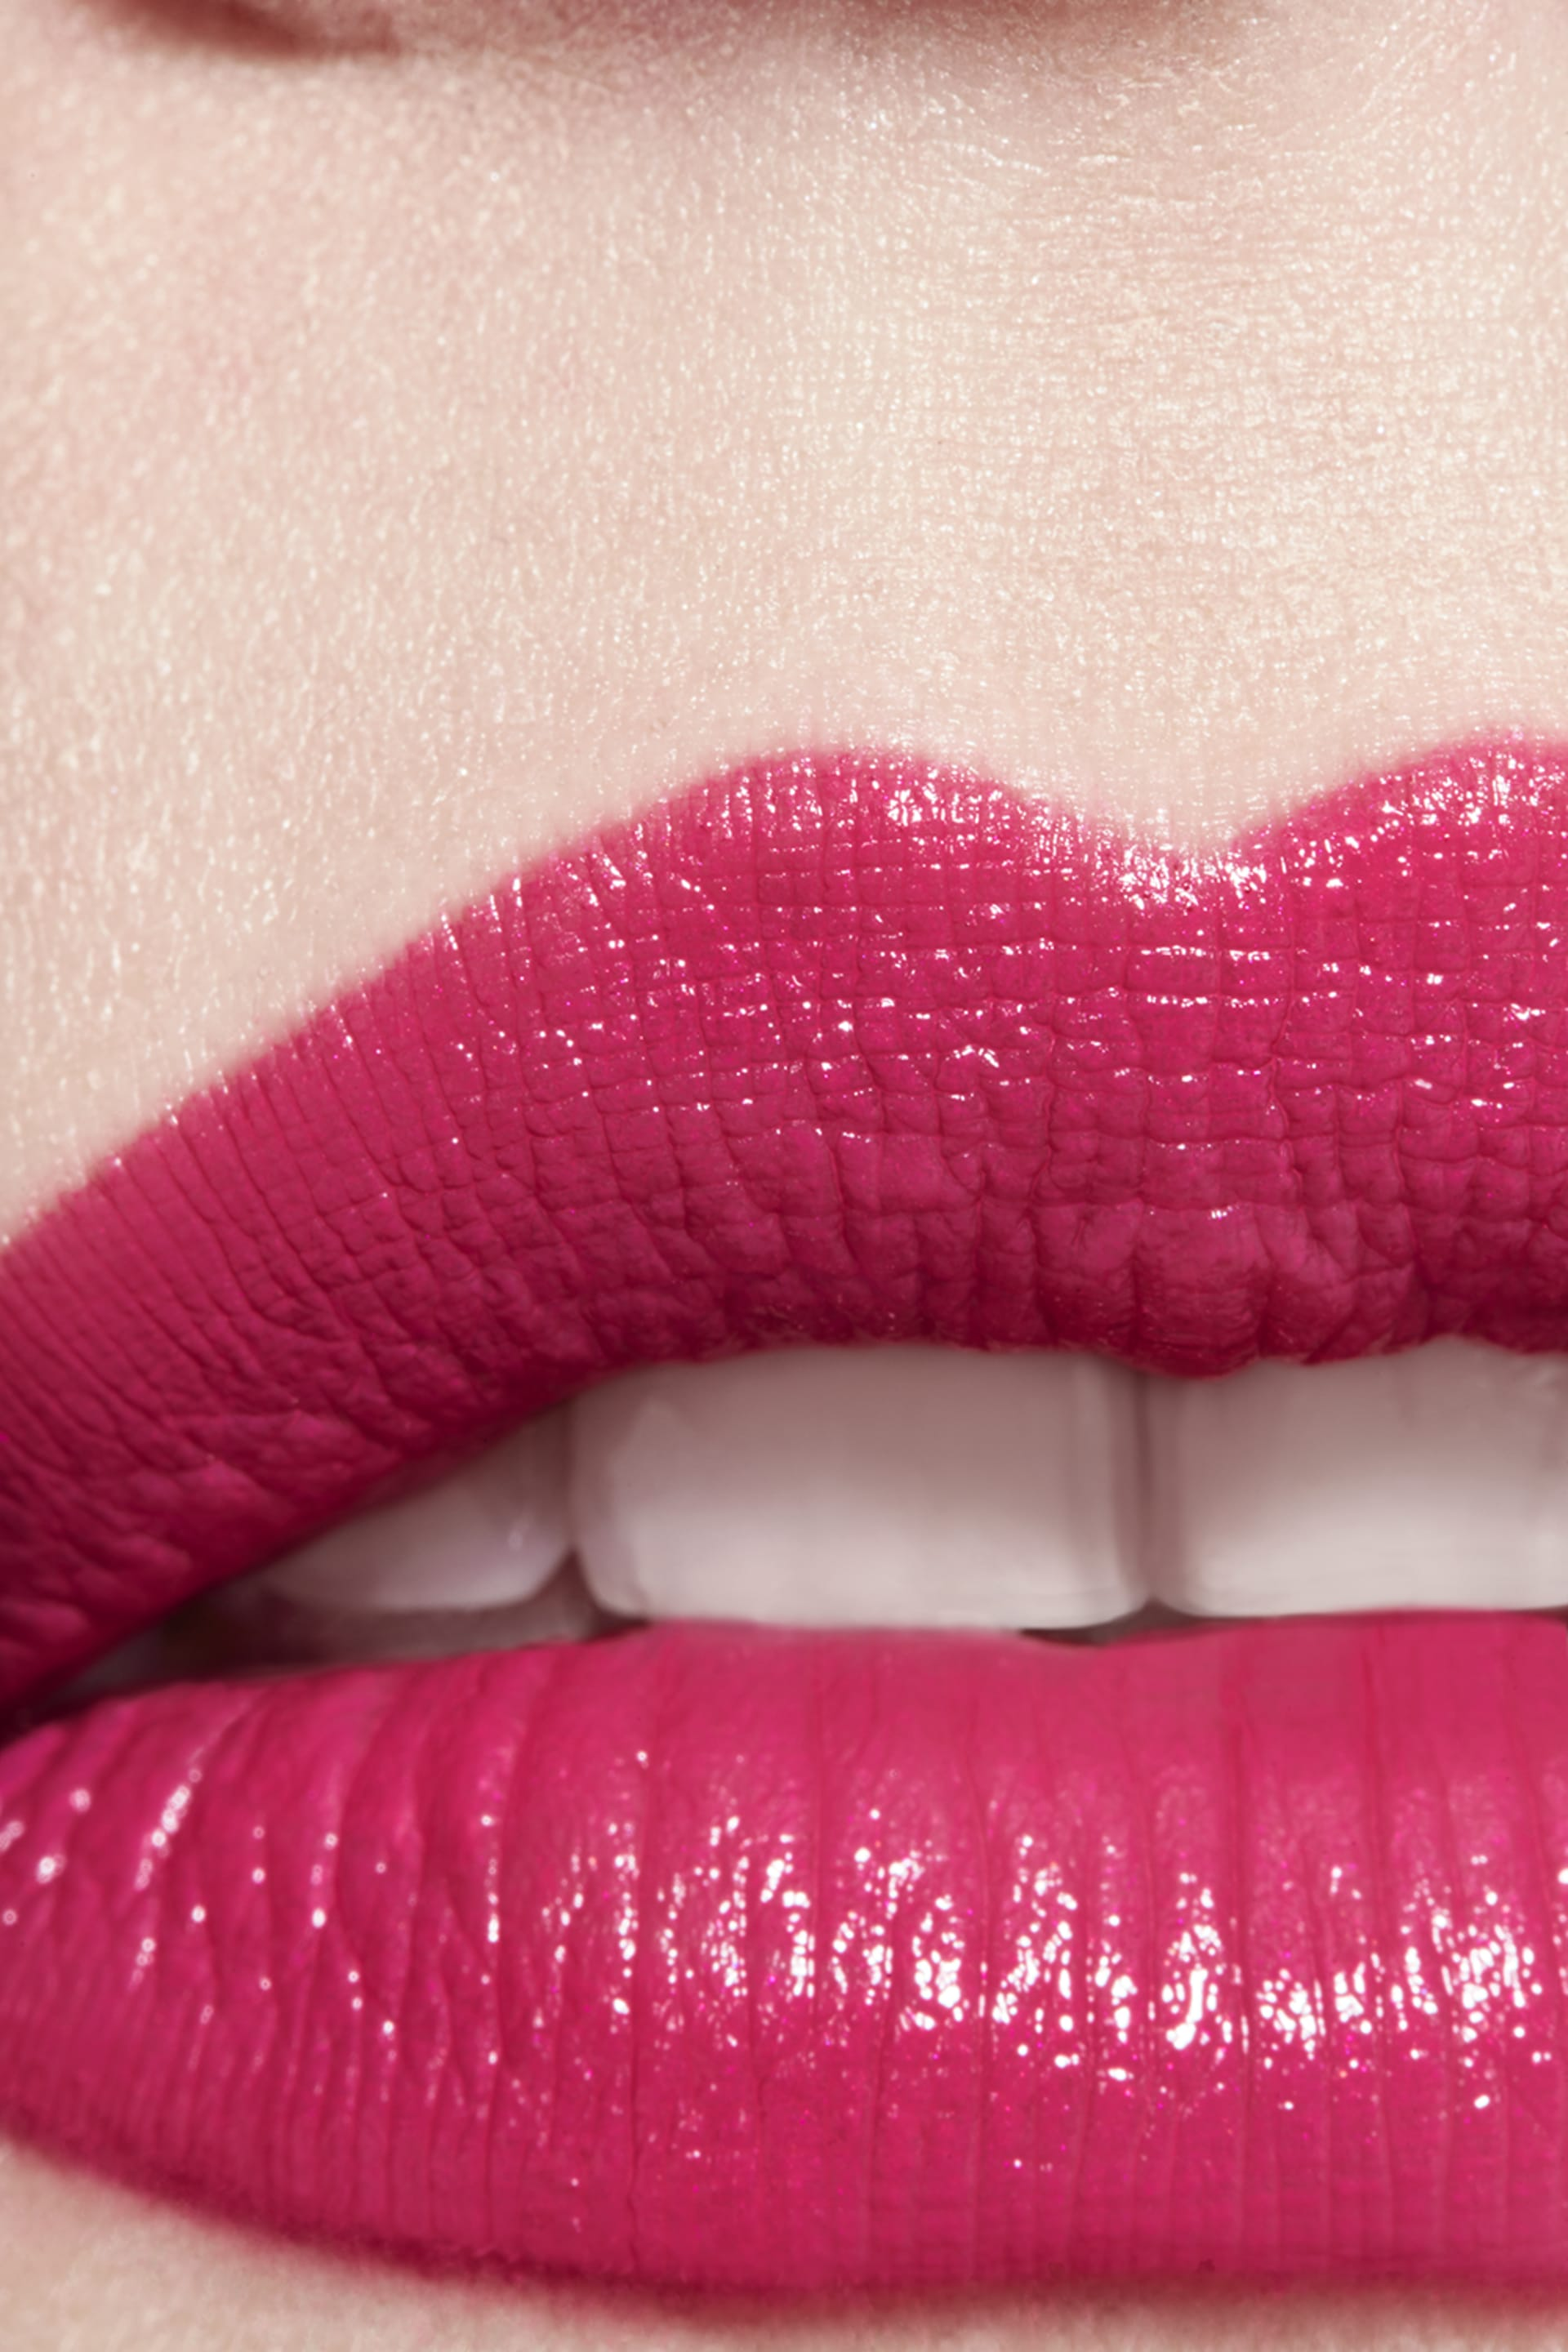 Application makeup visual 3 - ROUGE COCO 482 - ROSE MALICIEUX